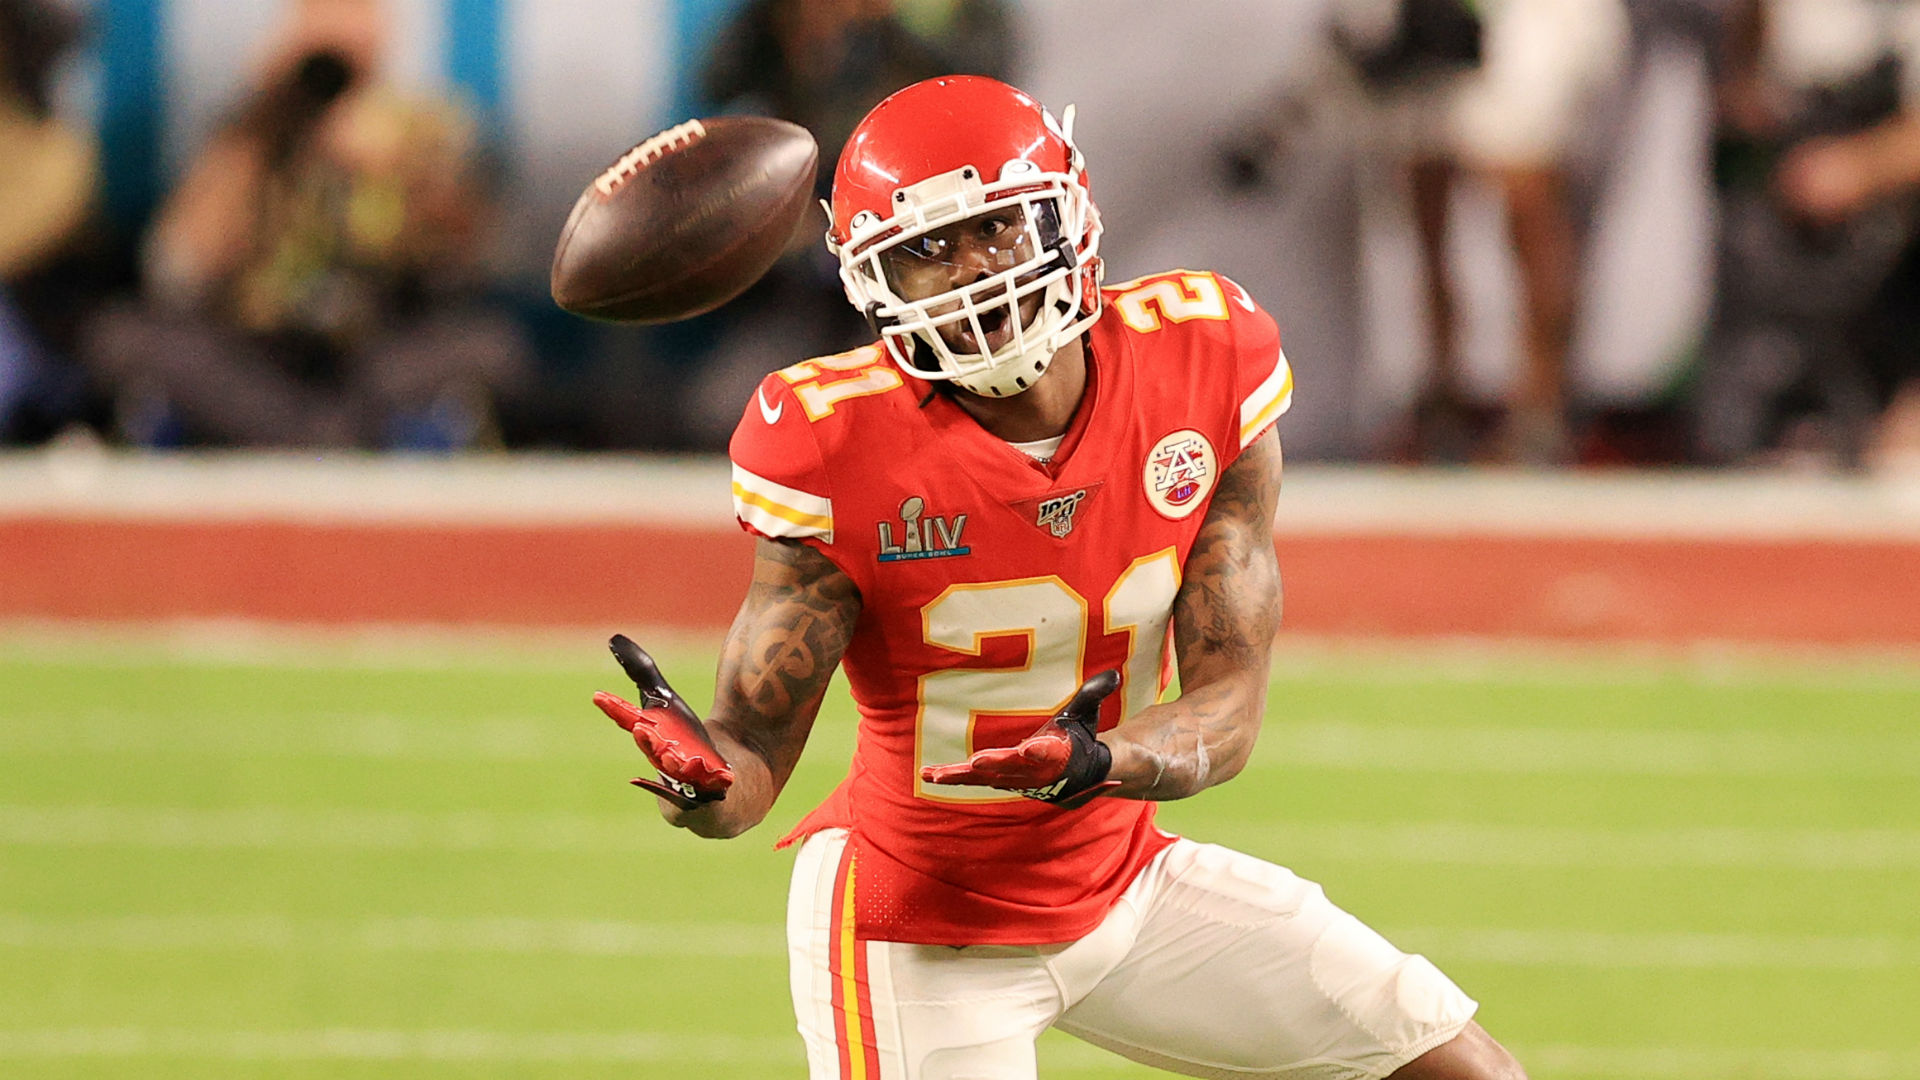 Bashaud Breeland will spend another year with the Kansas City Chiefs, who also brought in Ricky Seals-Jones.